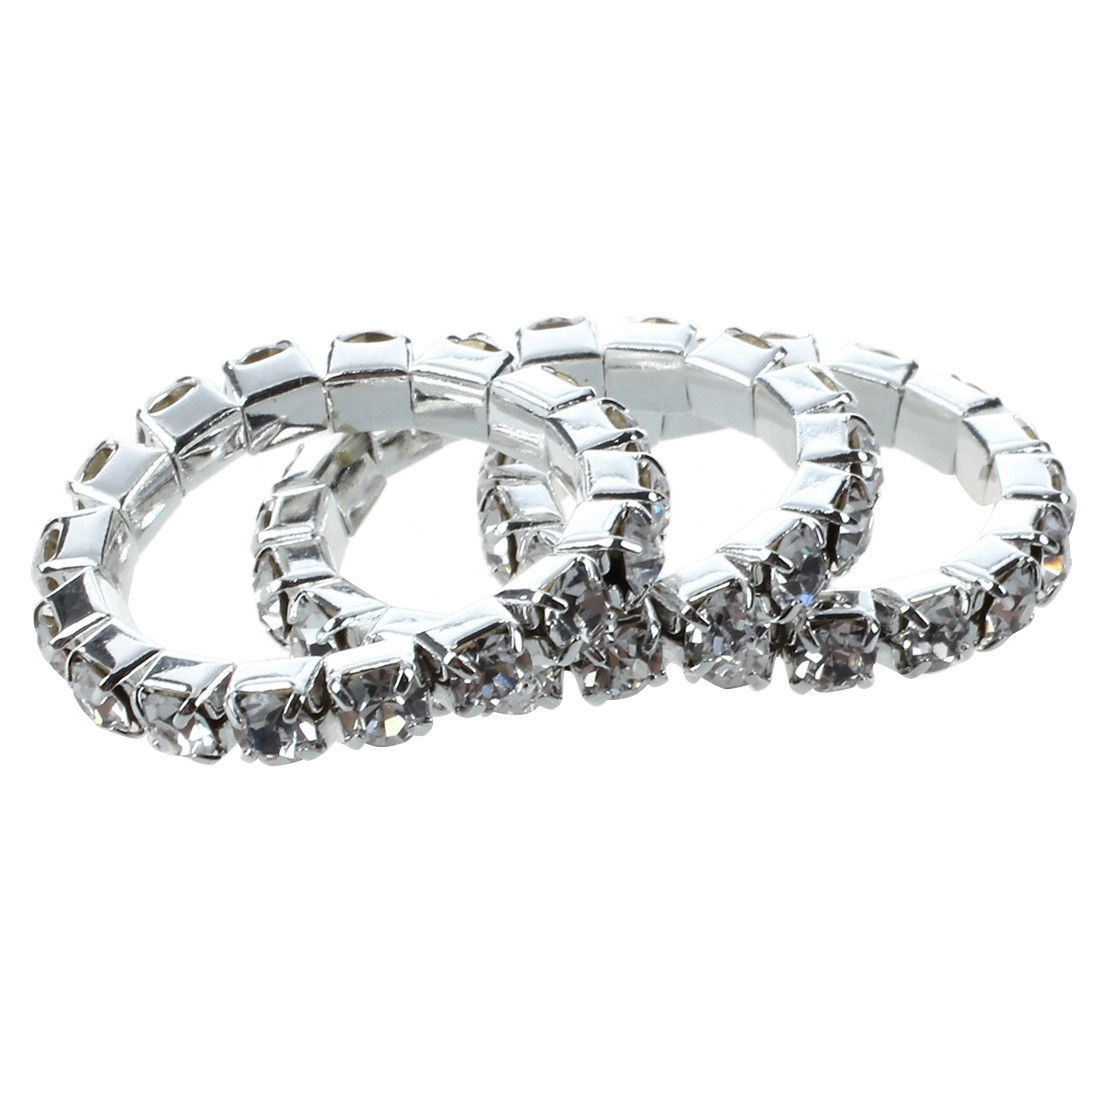 Single Row Crystal Clear Rhinestone Silver Stretch Toe Ring With Regard To Most Recent Elastic Toe Rings (View 13 of 15)